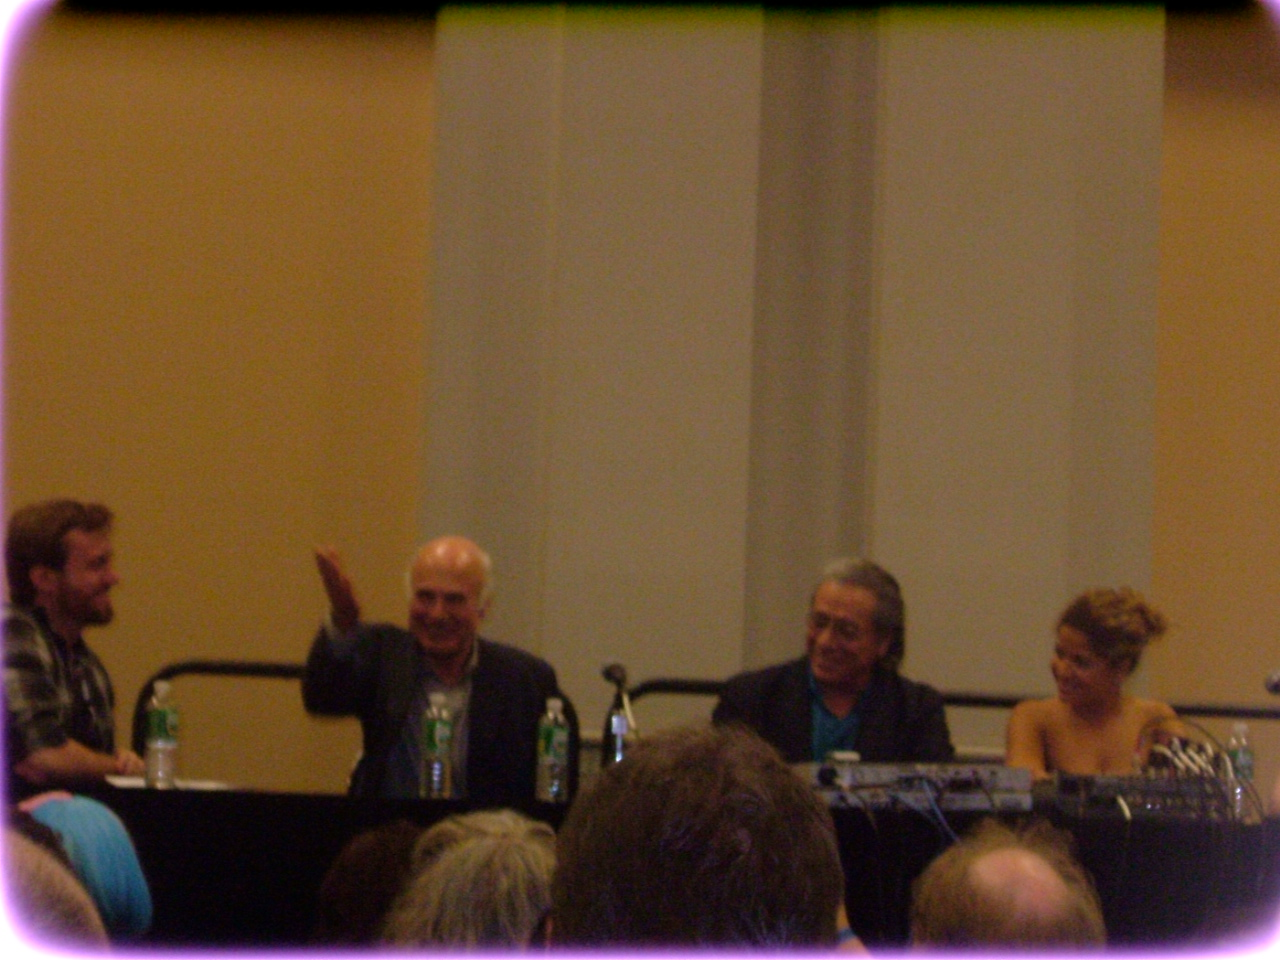 From left to right: Me, Michael Hogan, Edward James Olmos and Lucianna Carro. Nicki Clyne was to Carro's left.